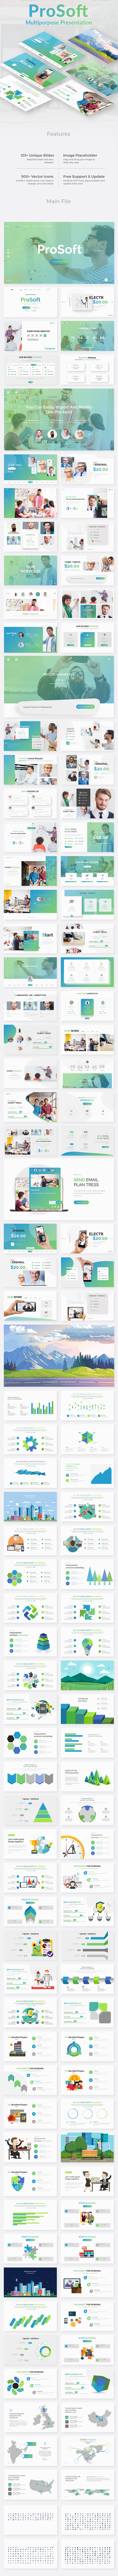 ProSoft Business Multipurpose Keynote Template - Business Keynote Templates